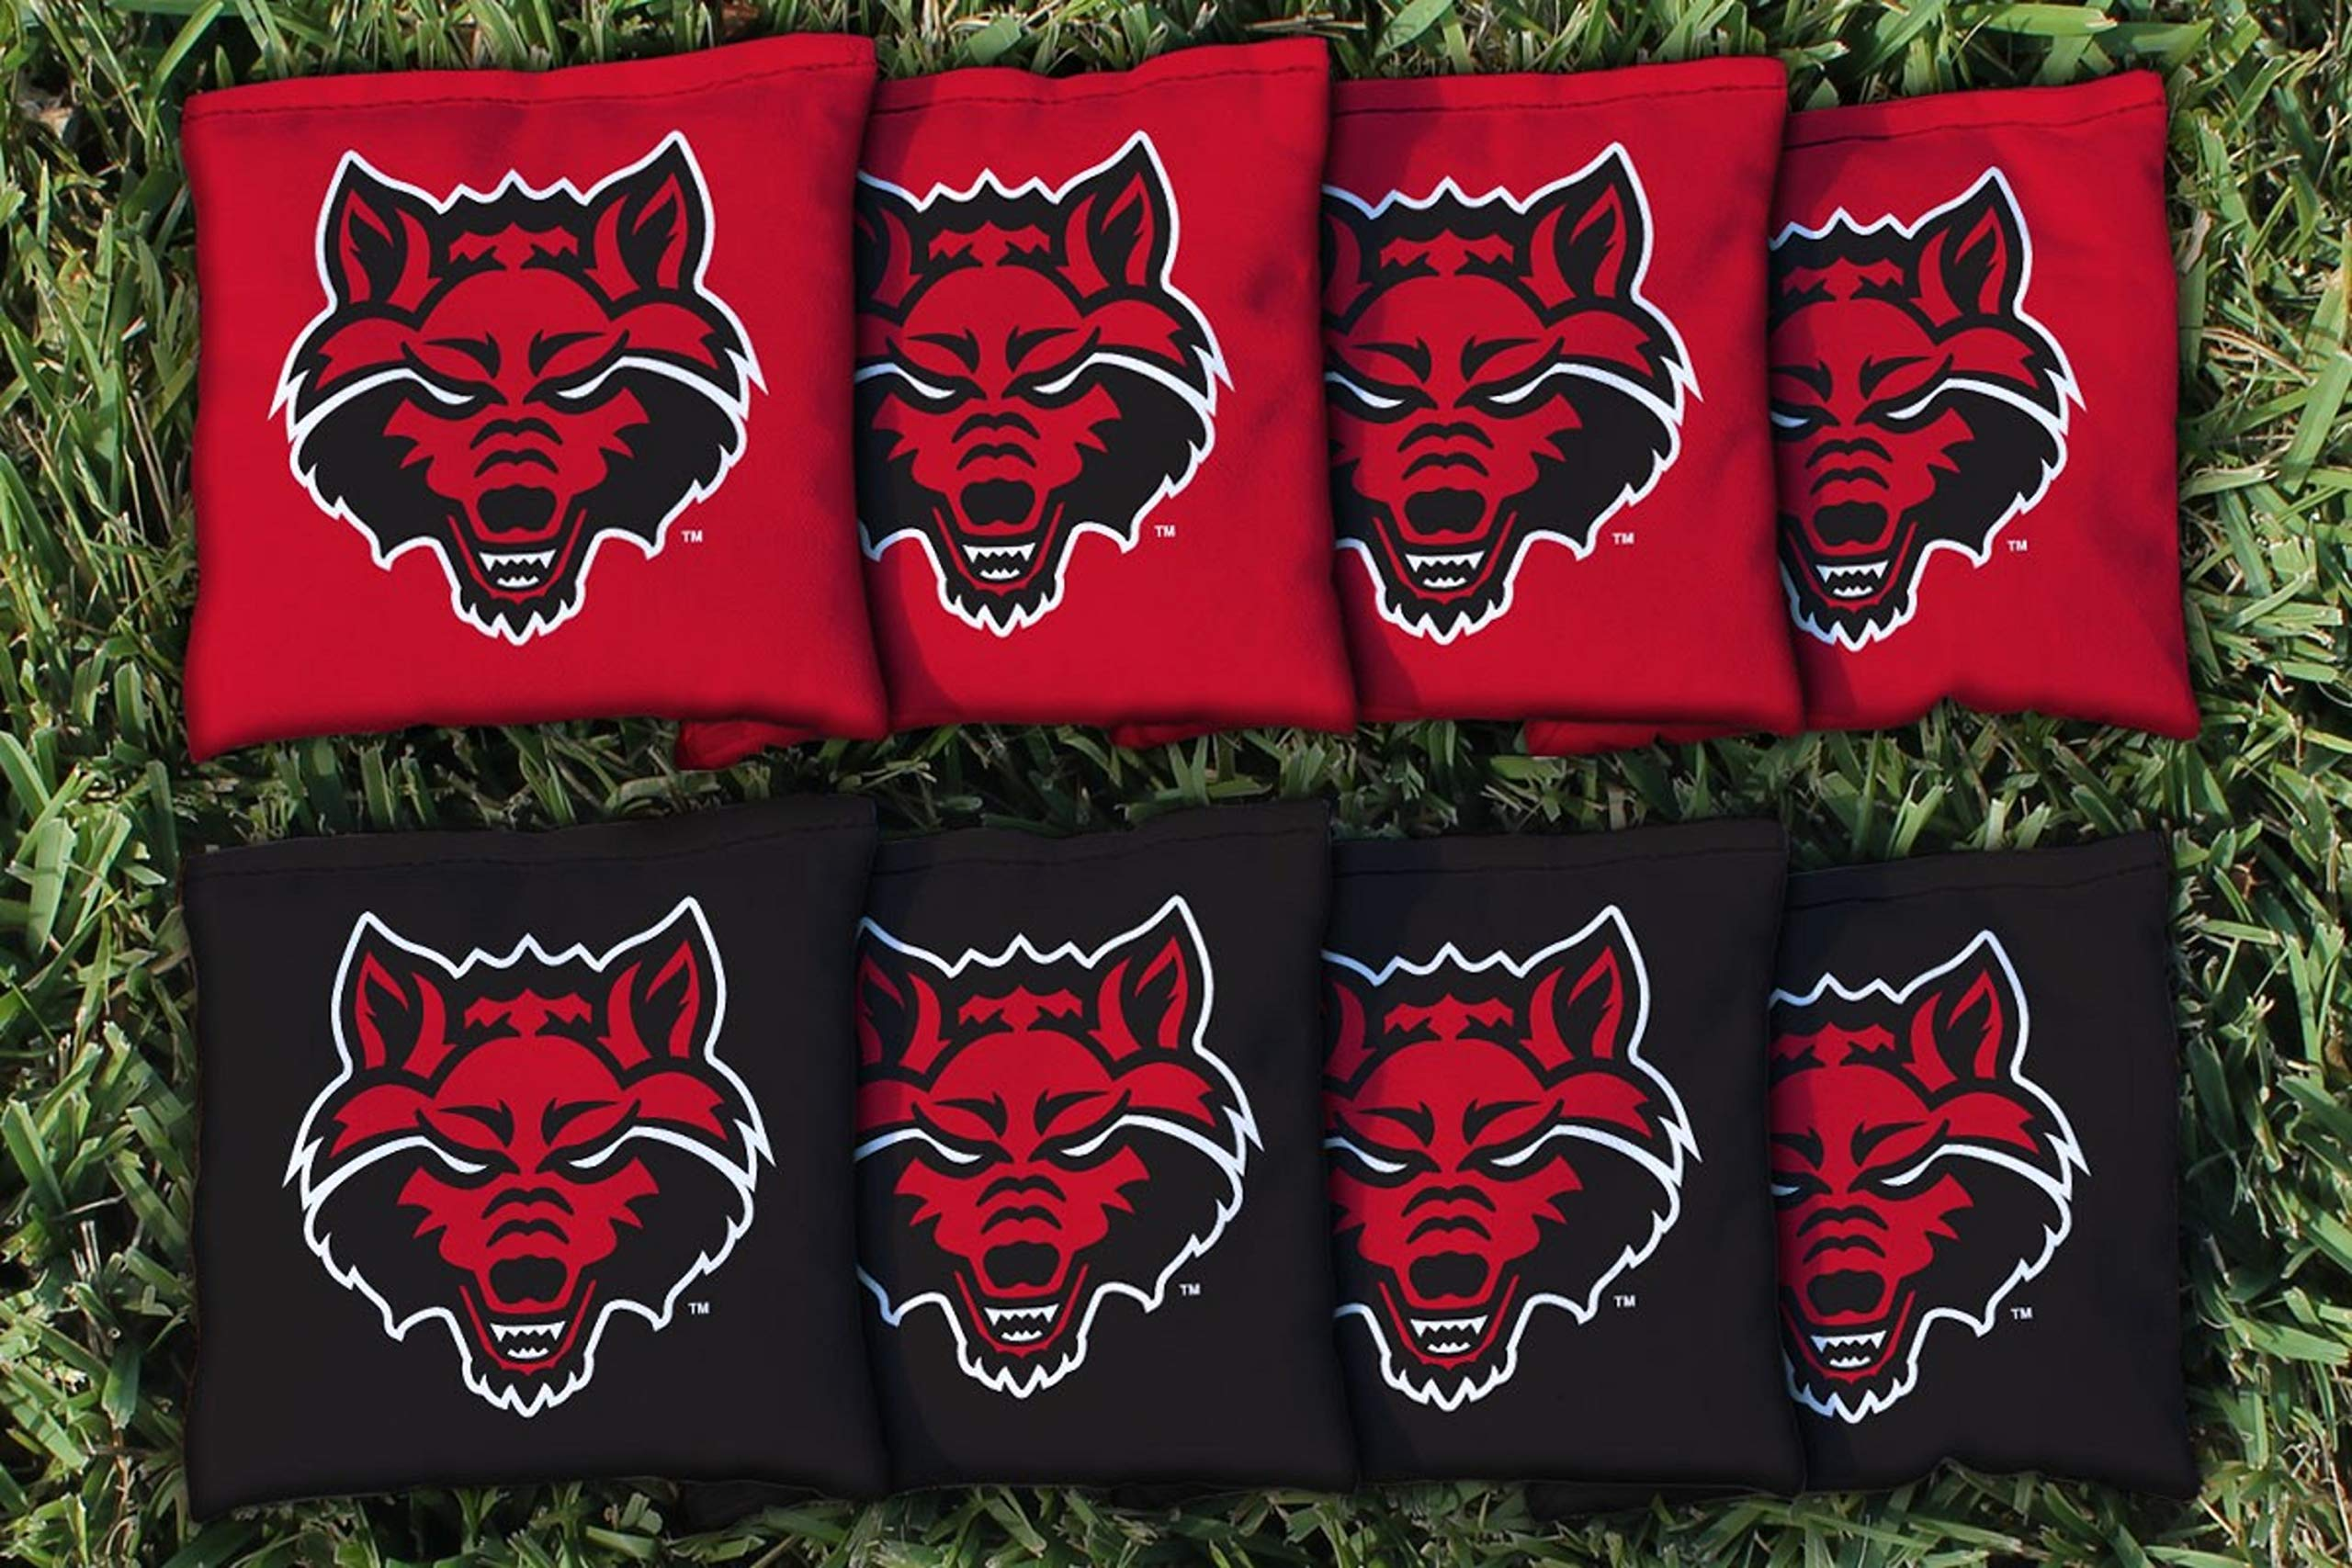 Victory Tailgate NCAA Collegiate Regulation Cornhole Game Bag Set (8 Bags Included, Corn-Filled) - Arkansas State Red Wolves by Victory Tailgate